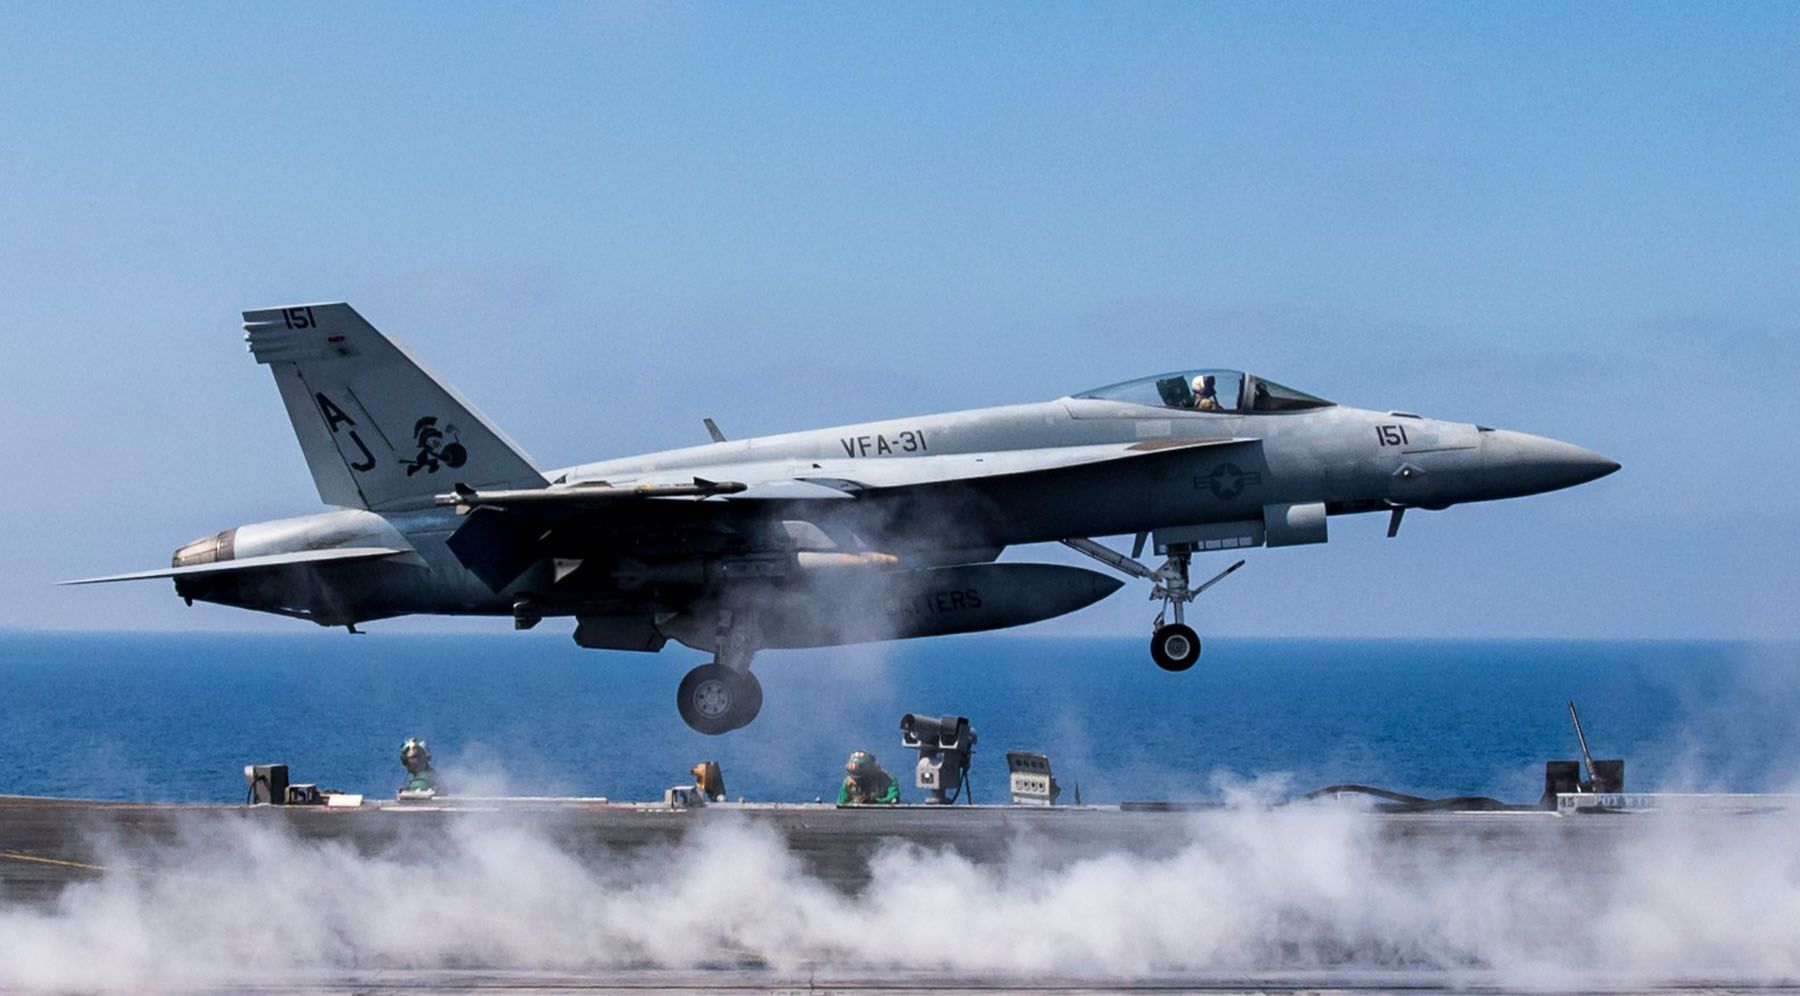 F A  Navy Jet Crash Latest Everything To Know About Philippine Sea Incident